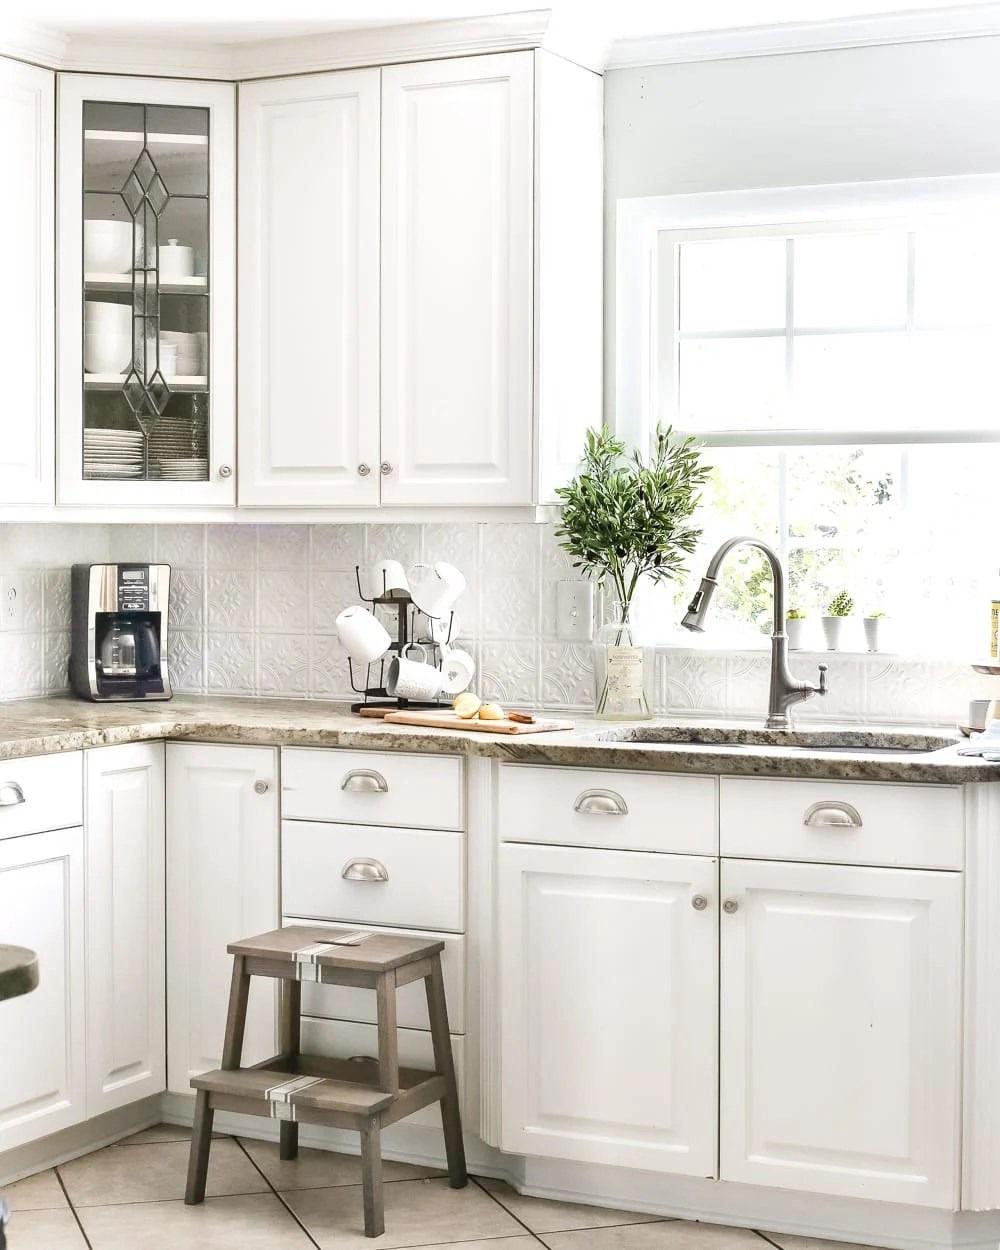 tin kitchen backsplash lowes undermount sink diy pressed bless er house blesserhouse com how to makeover a